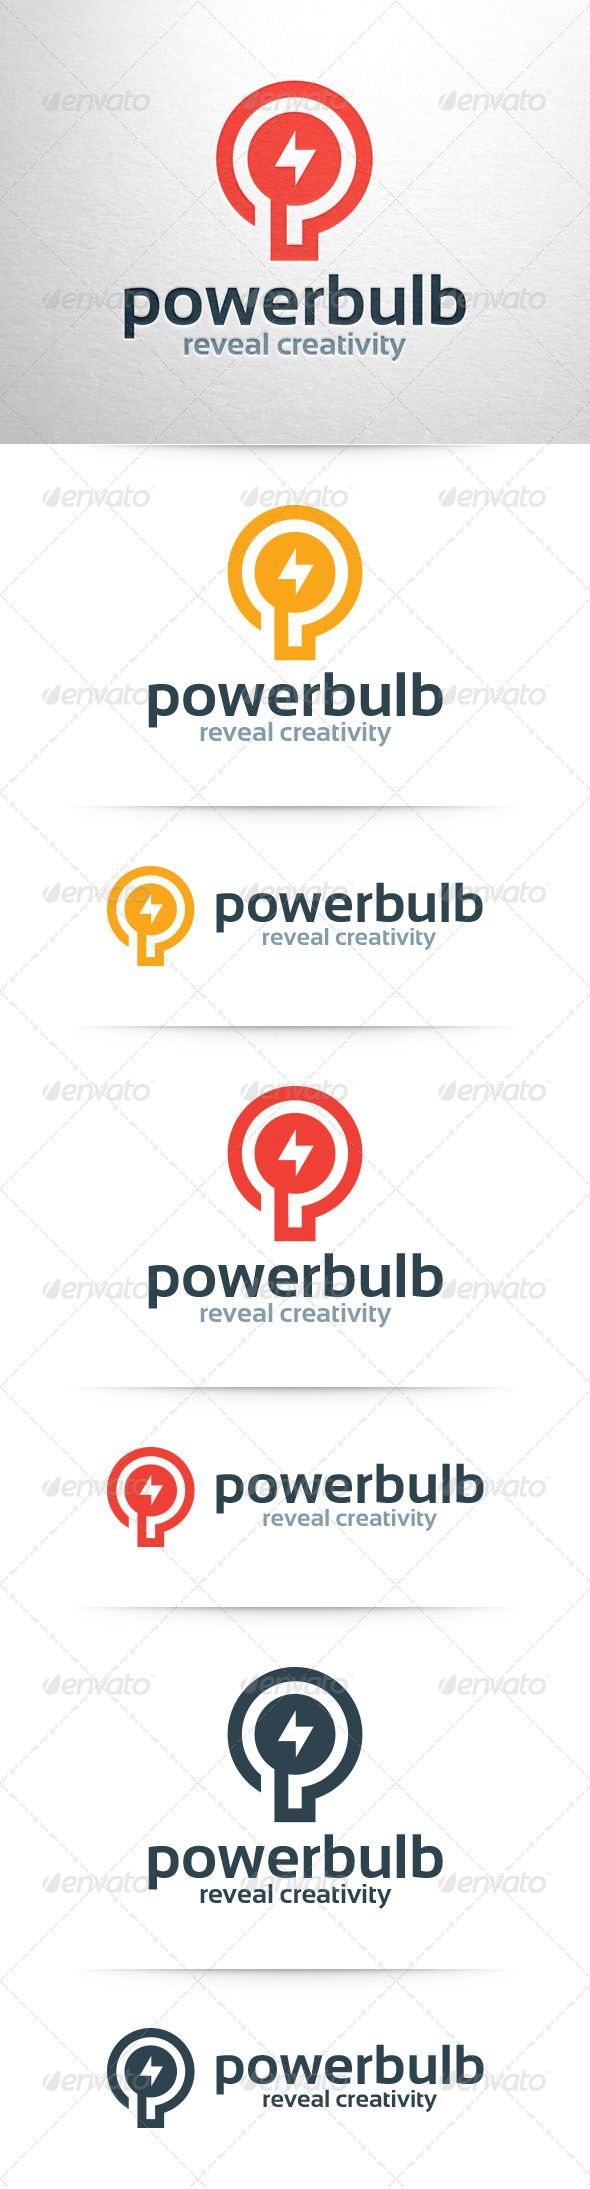 Power Bulb Logo Template — Vector EPS #idea #logo • Available here → https://graphicriver.net/item/power-bulb-logo-template/8294638?ref=pxcr